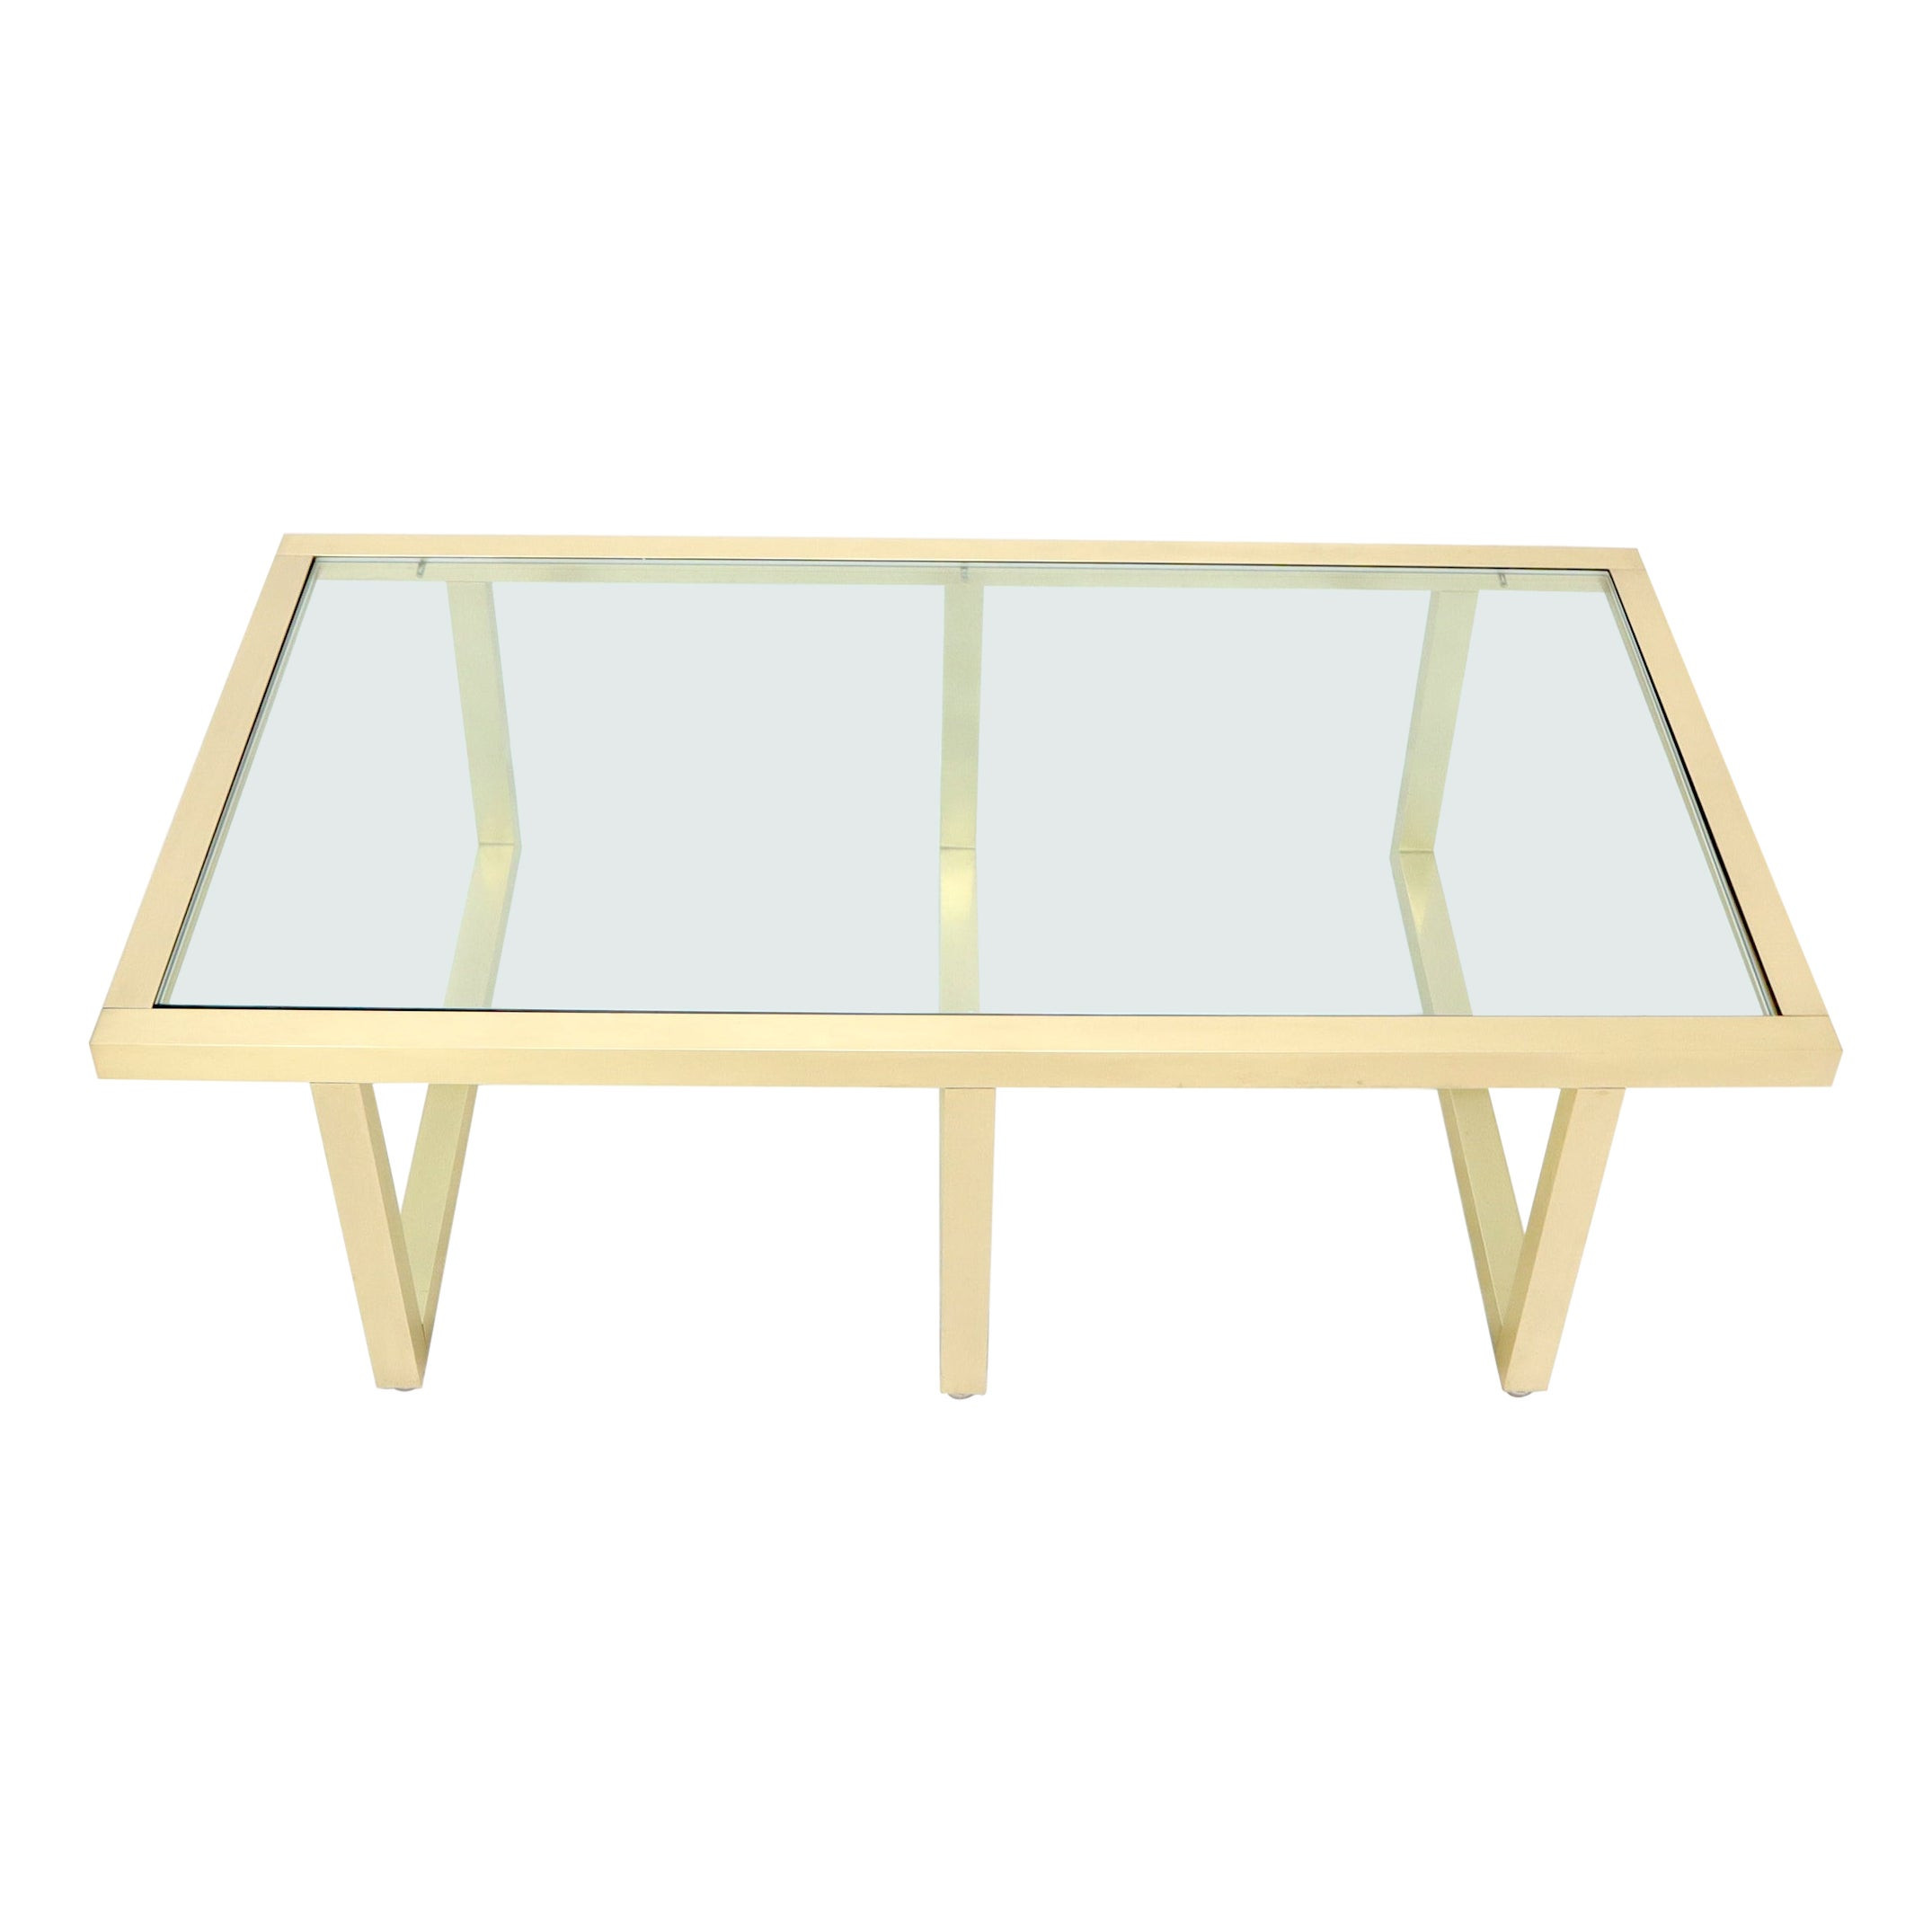 Brass Frame Shape Base Glass Top Rectangular Coffee Table